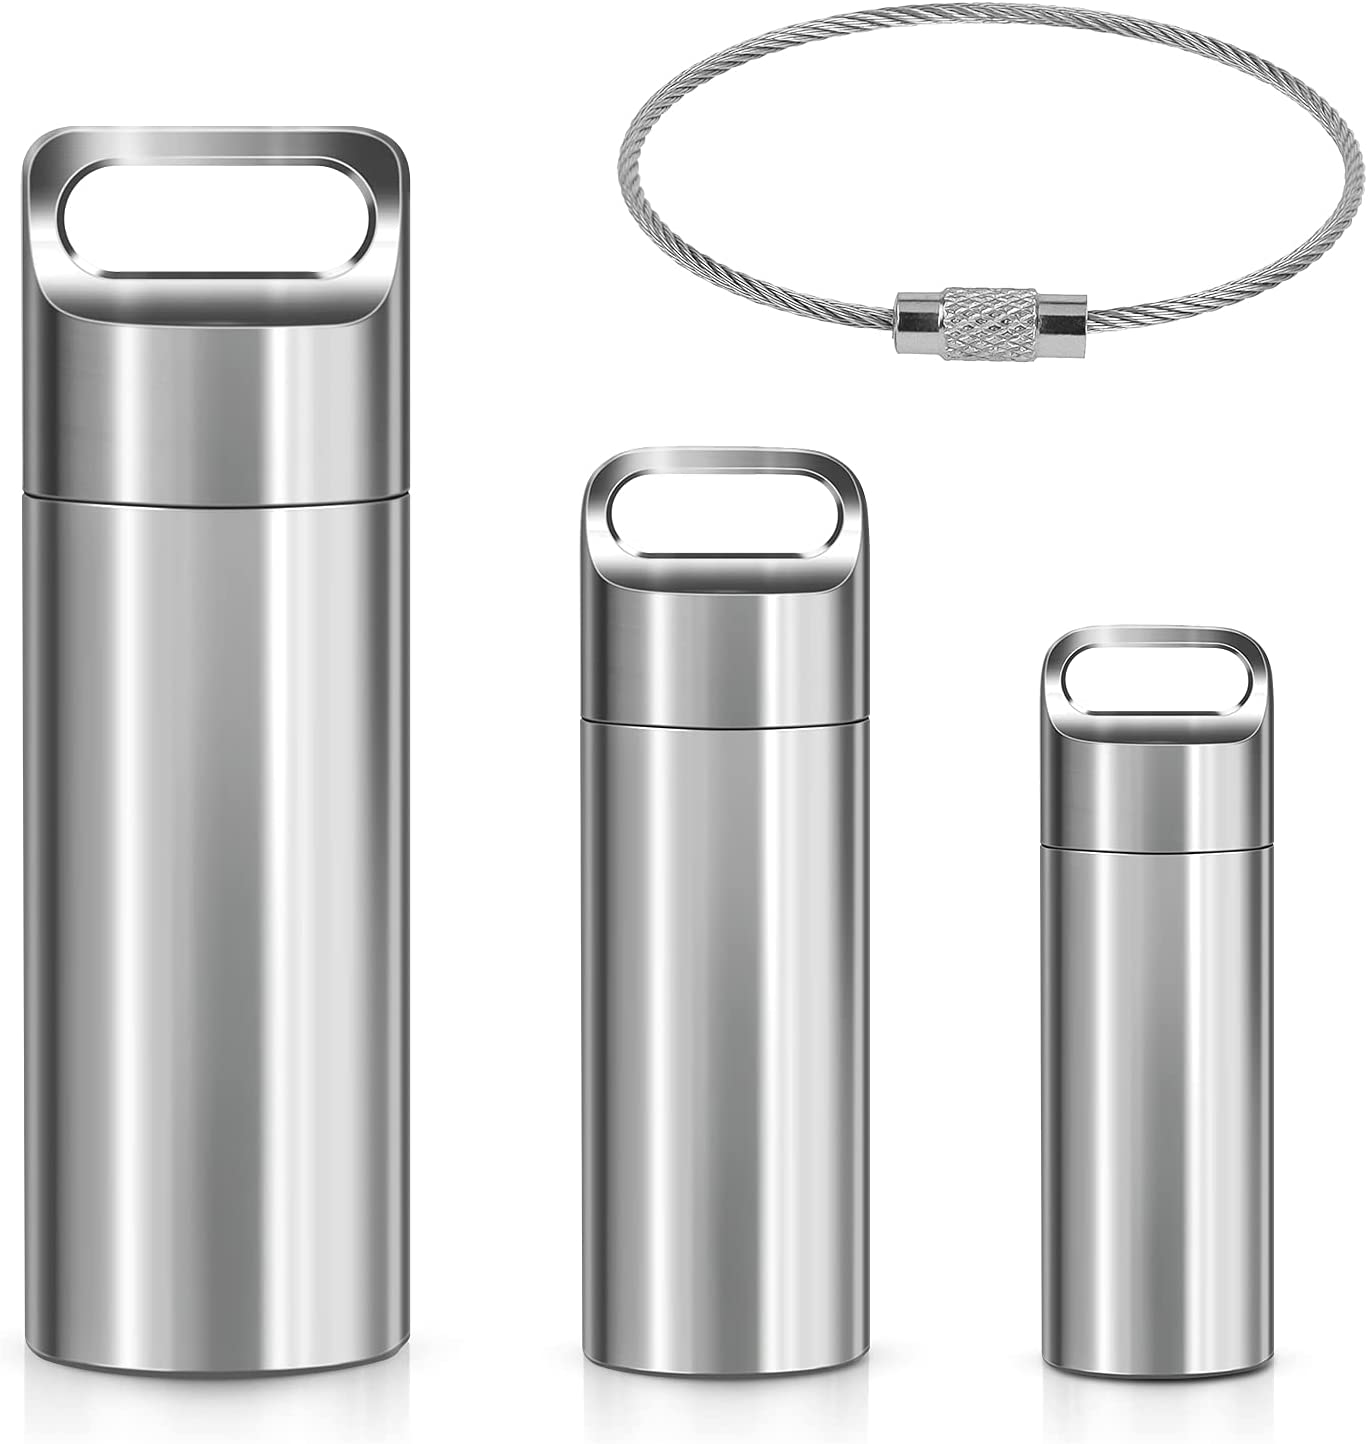 Mesa Mall Portable Keychain Pill Holder Stainless Steel C Waterproof Ranking TOP20